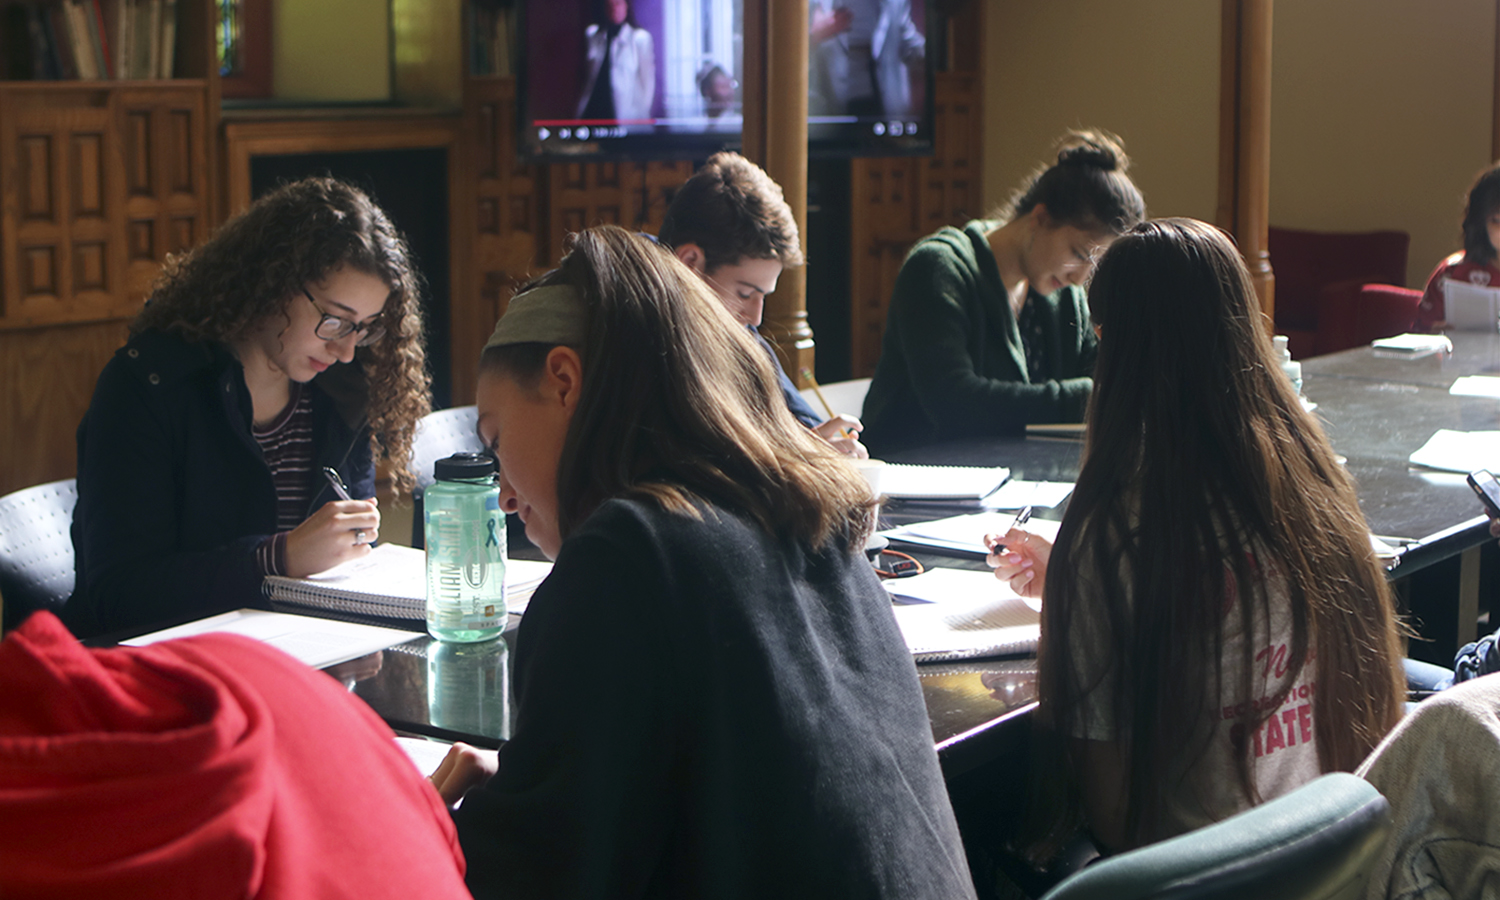 Lilly Shea '20 works on a writing assignment as part of a creative non-fiction workshop led by graduate students from the Creative Writing Program at University of Iowa ​.